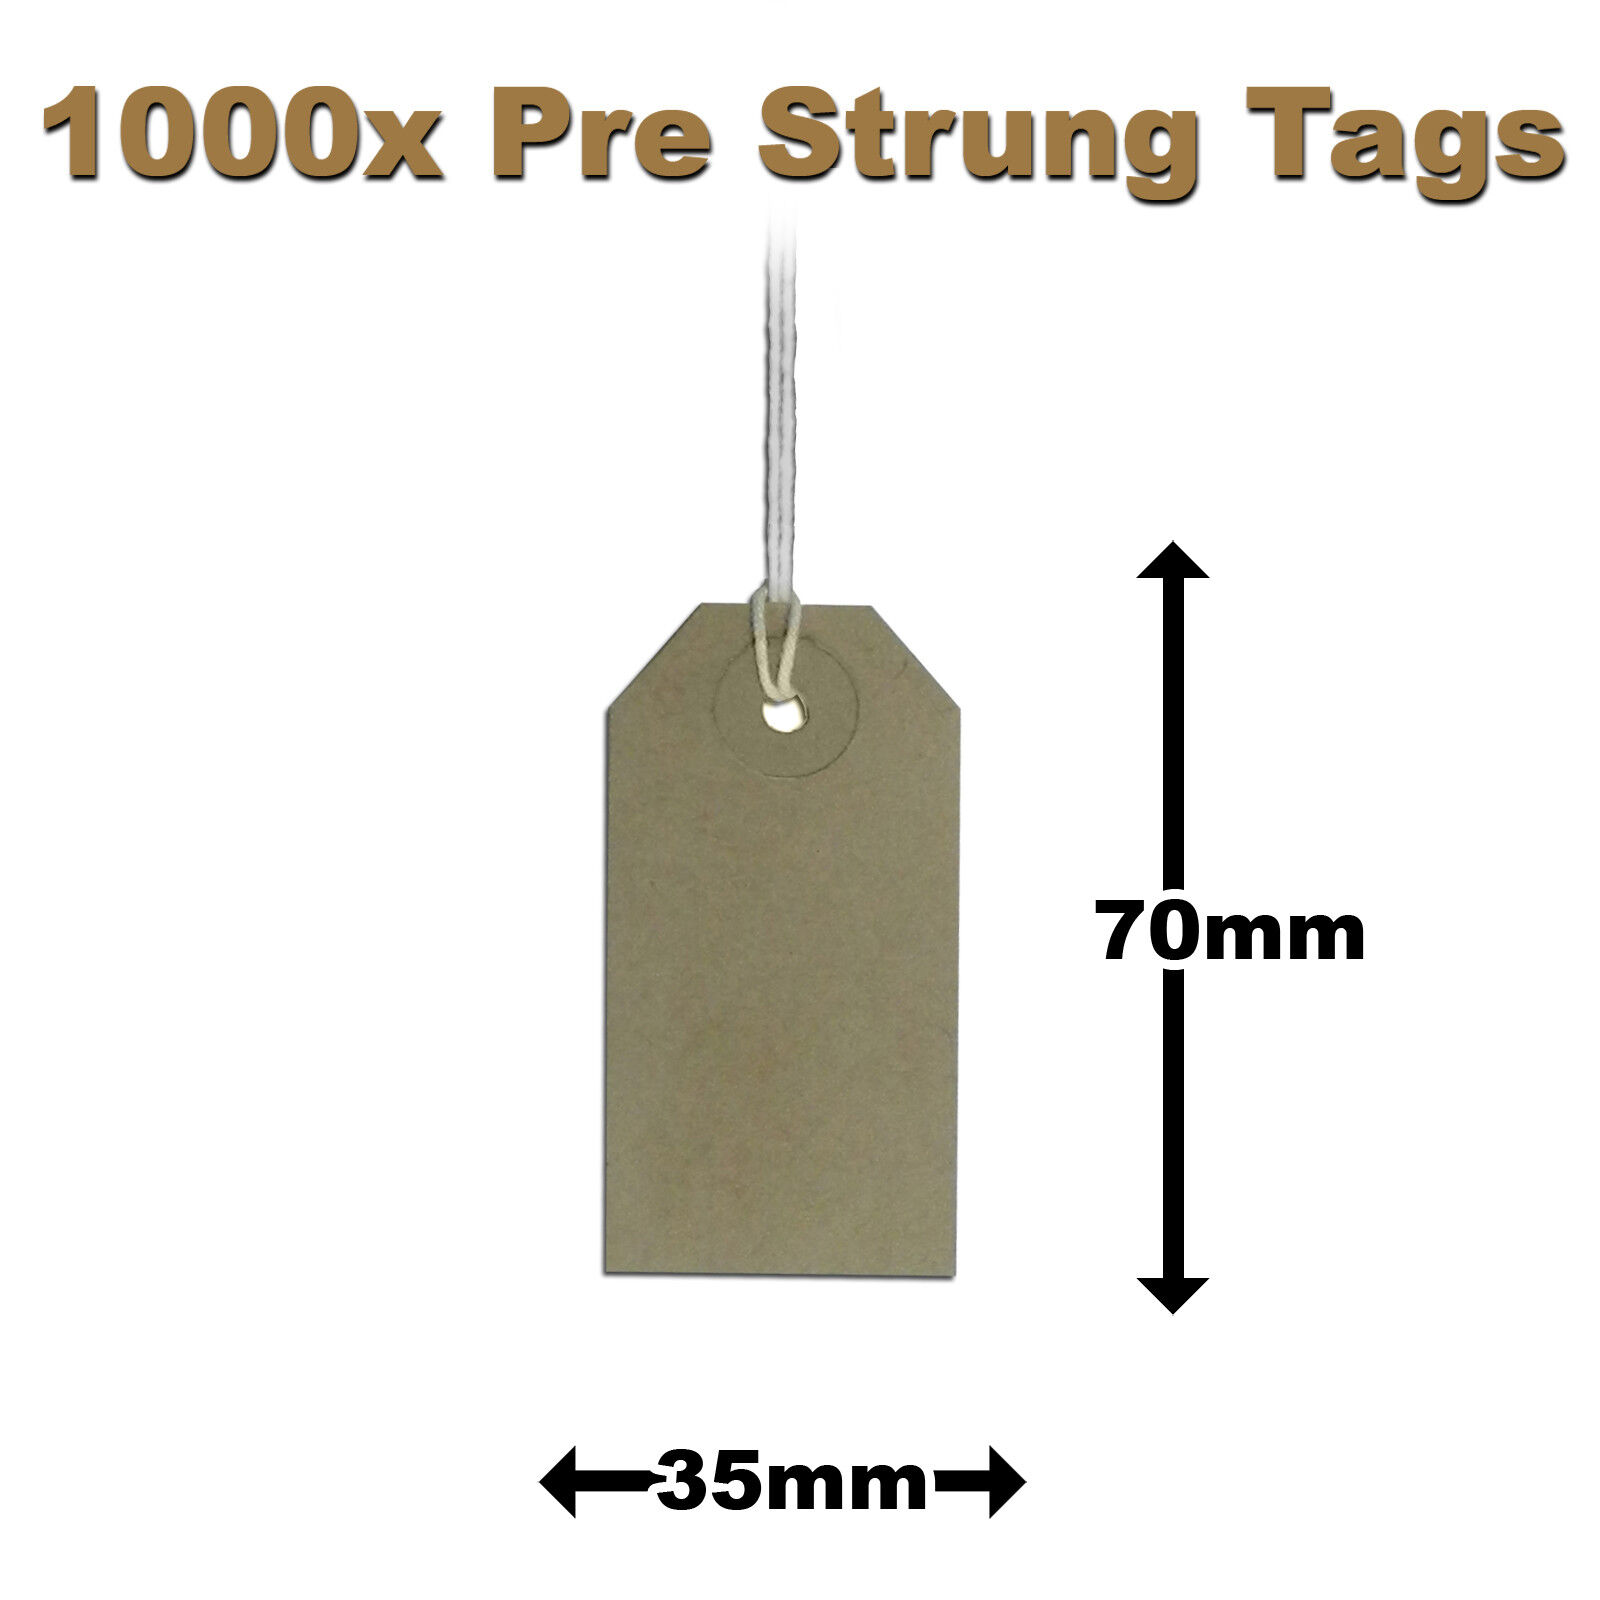 Pre-Strung Brown/Manilla/Buff Price Tags Tickets 70mm x 35mm 1MS x 1000 (H3)